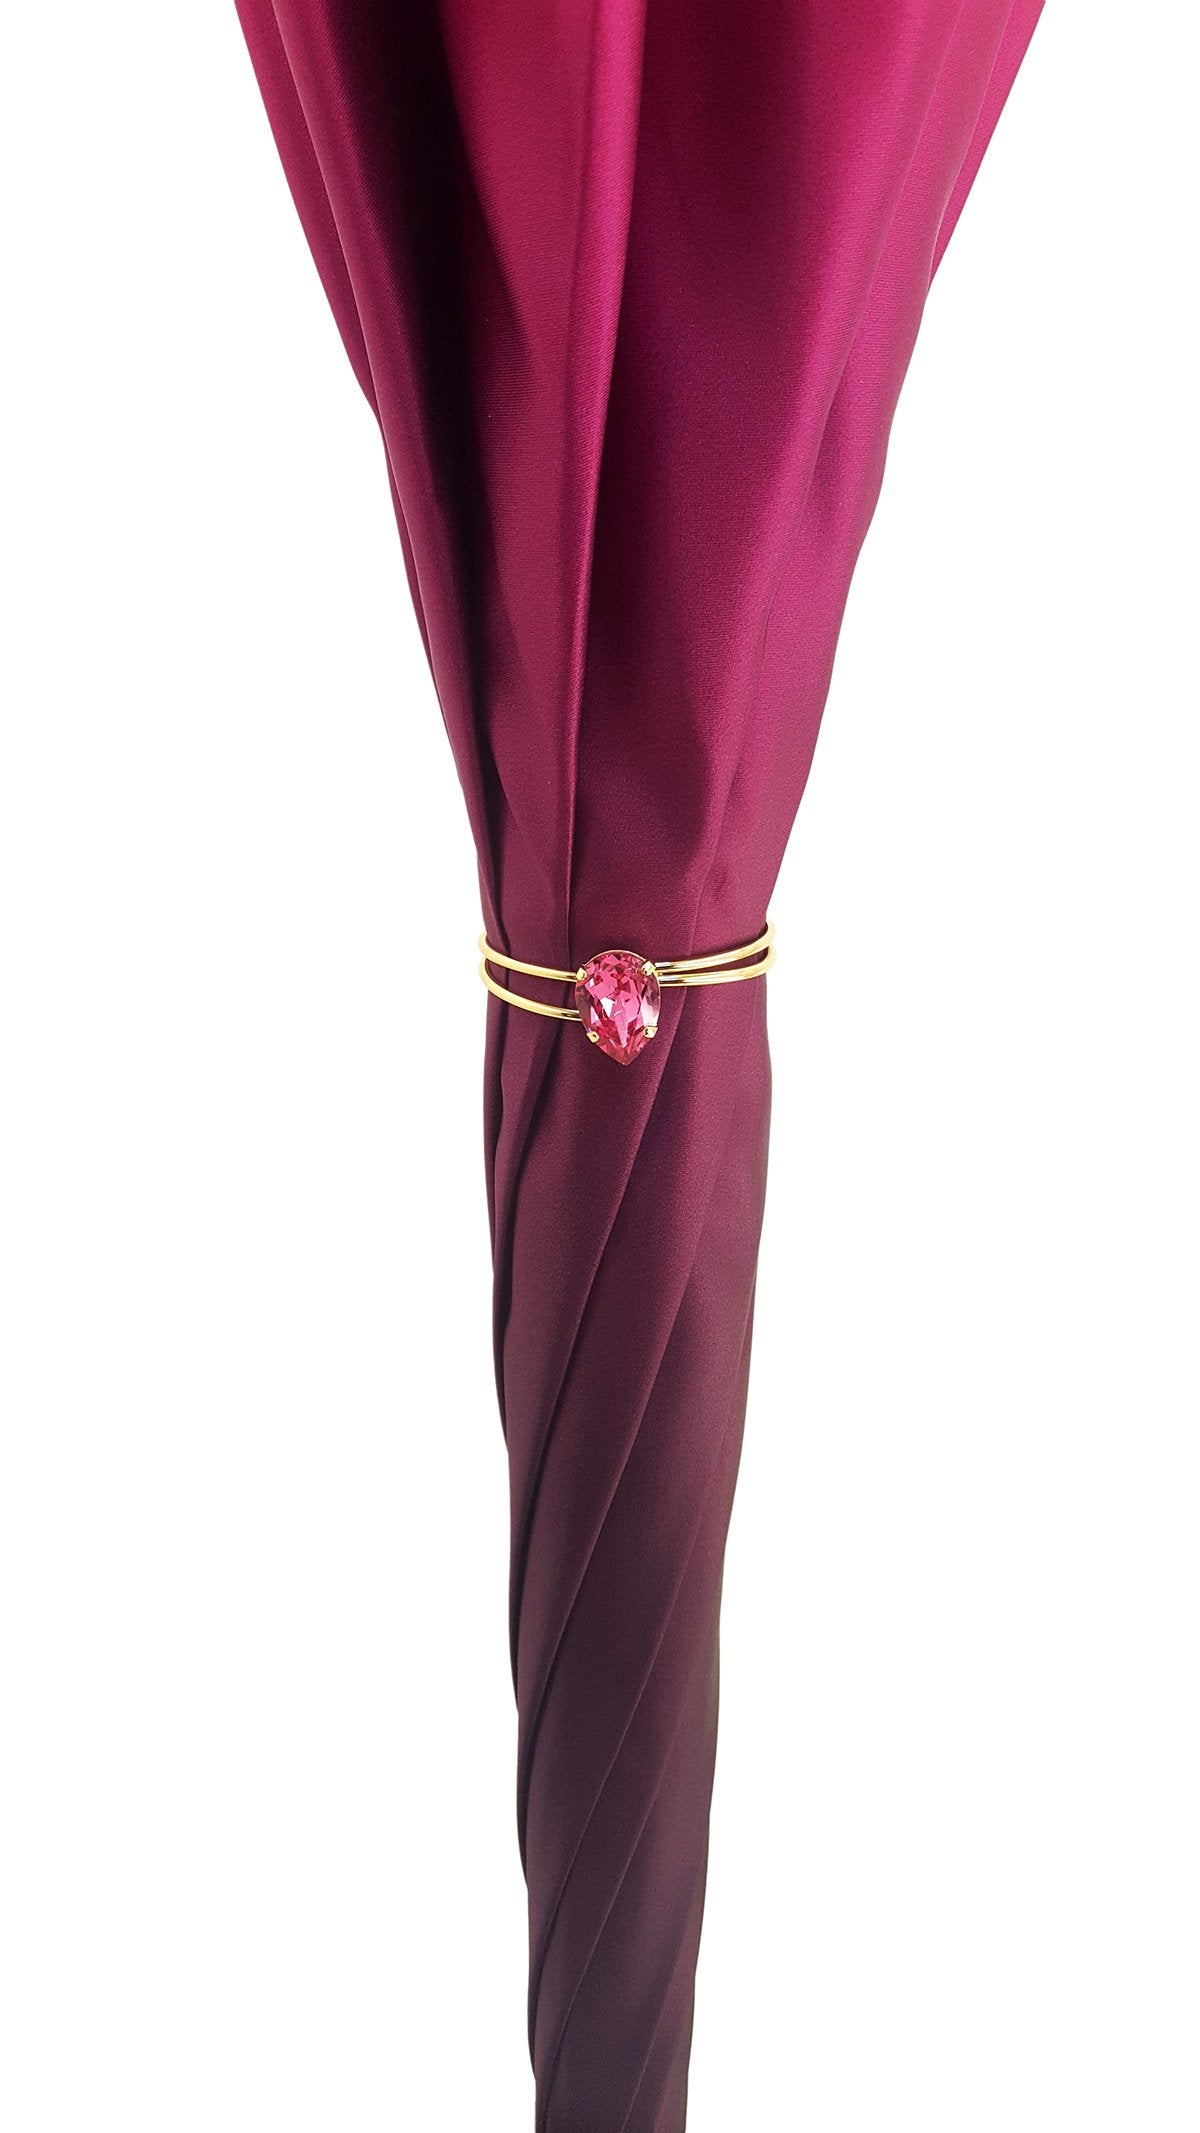 Beautifull Double Canopy Toucan Umbrella in a Luxurious Gradient Fuchsia Color - il-marchesato